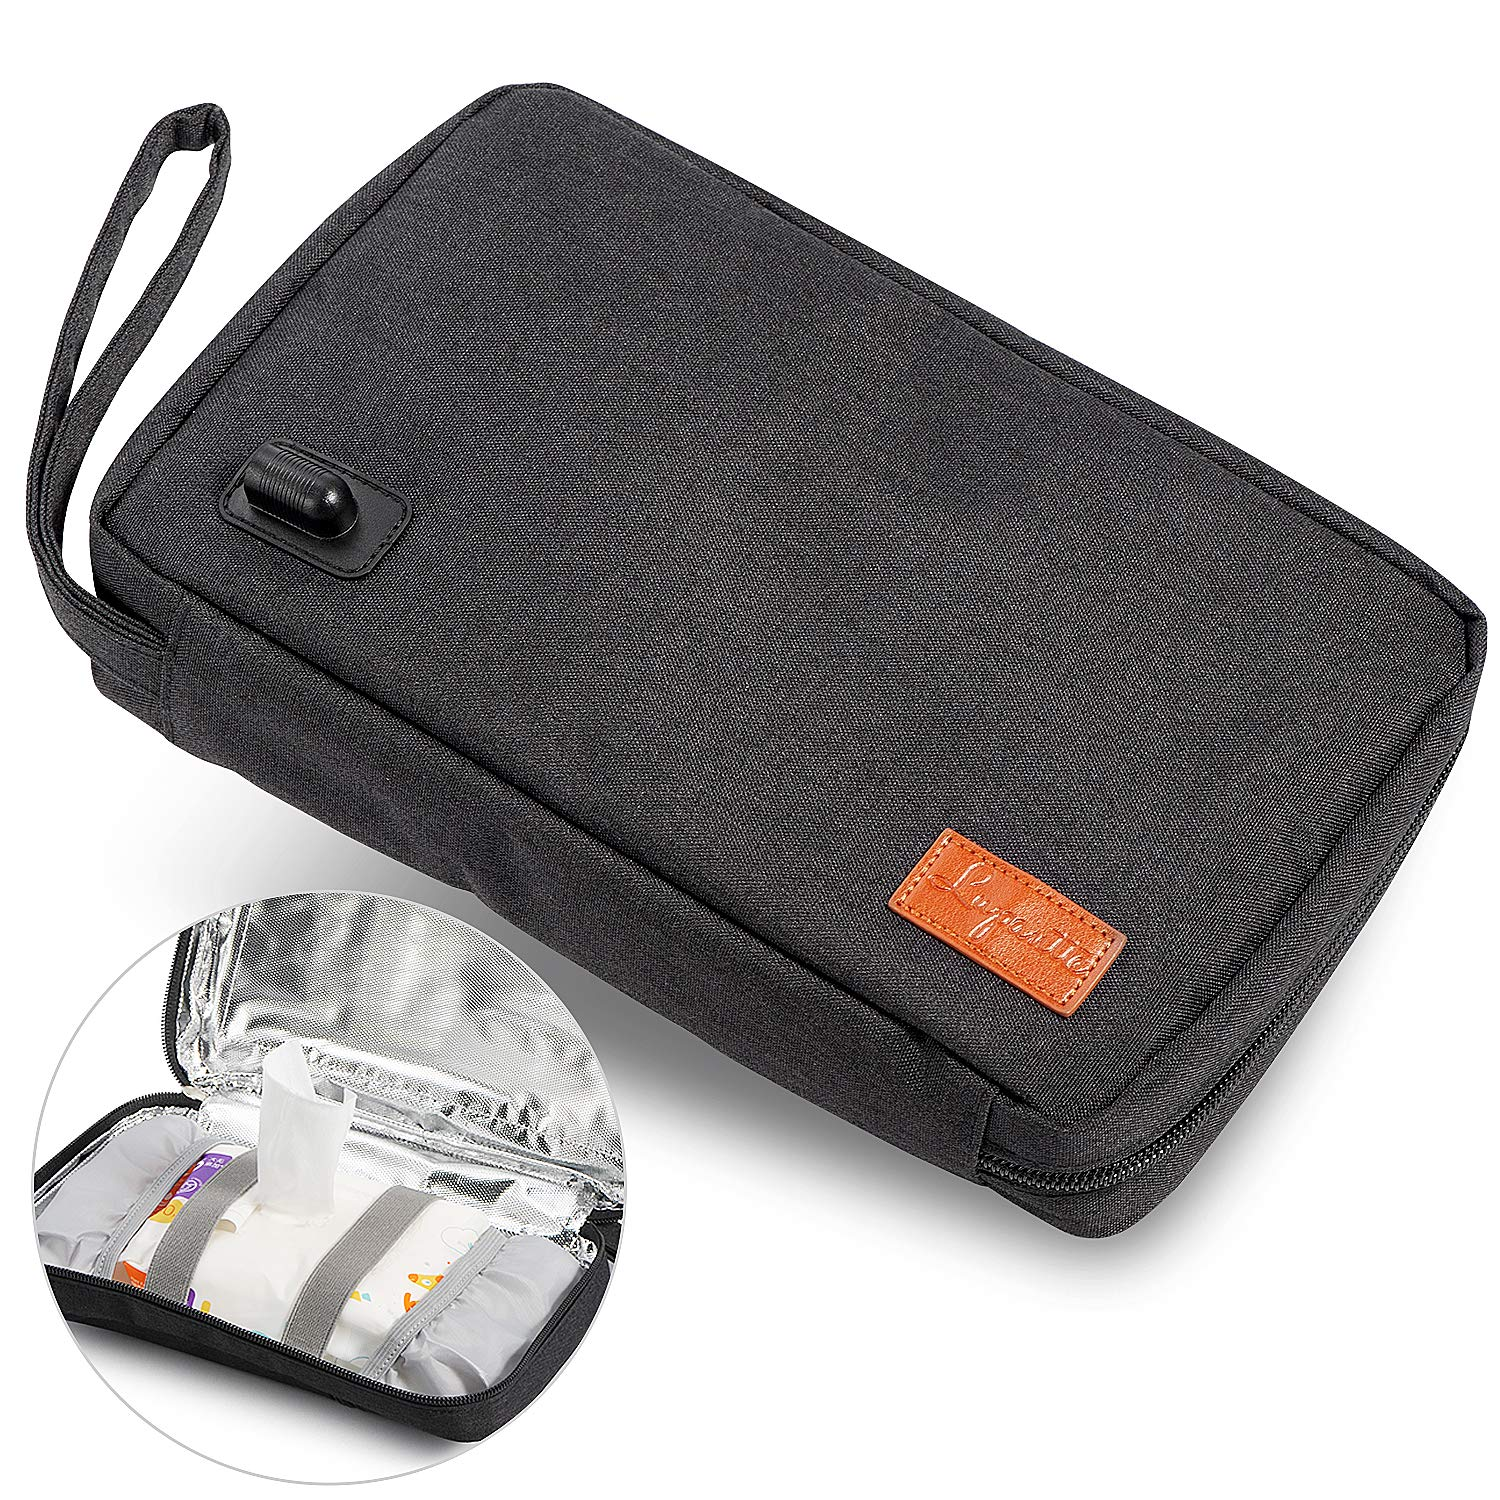 Portable Wipe Warmer Lupantte Baby Limited price Columbus Mall Wipes USB Holde